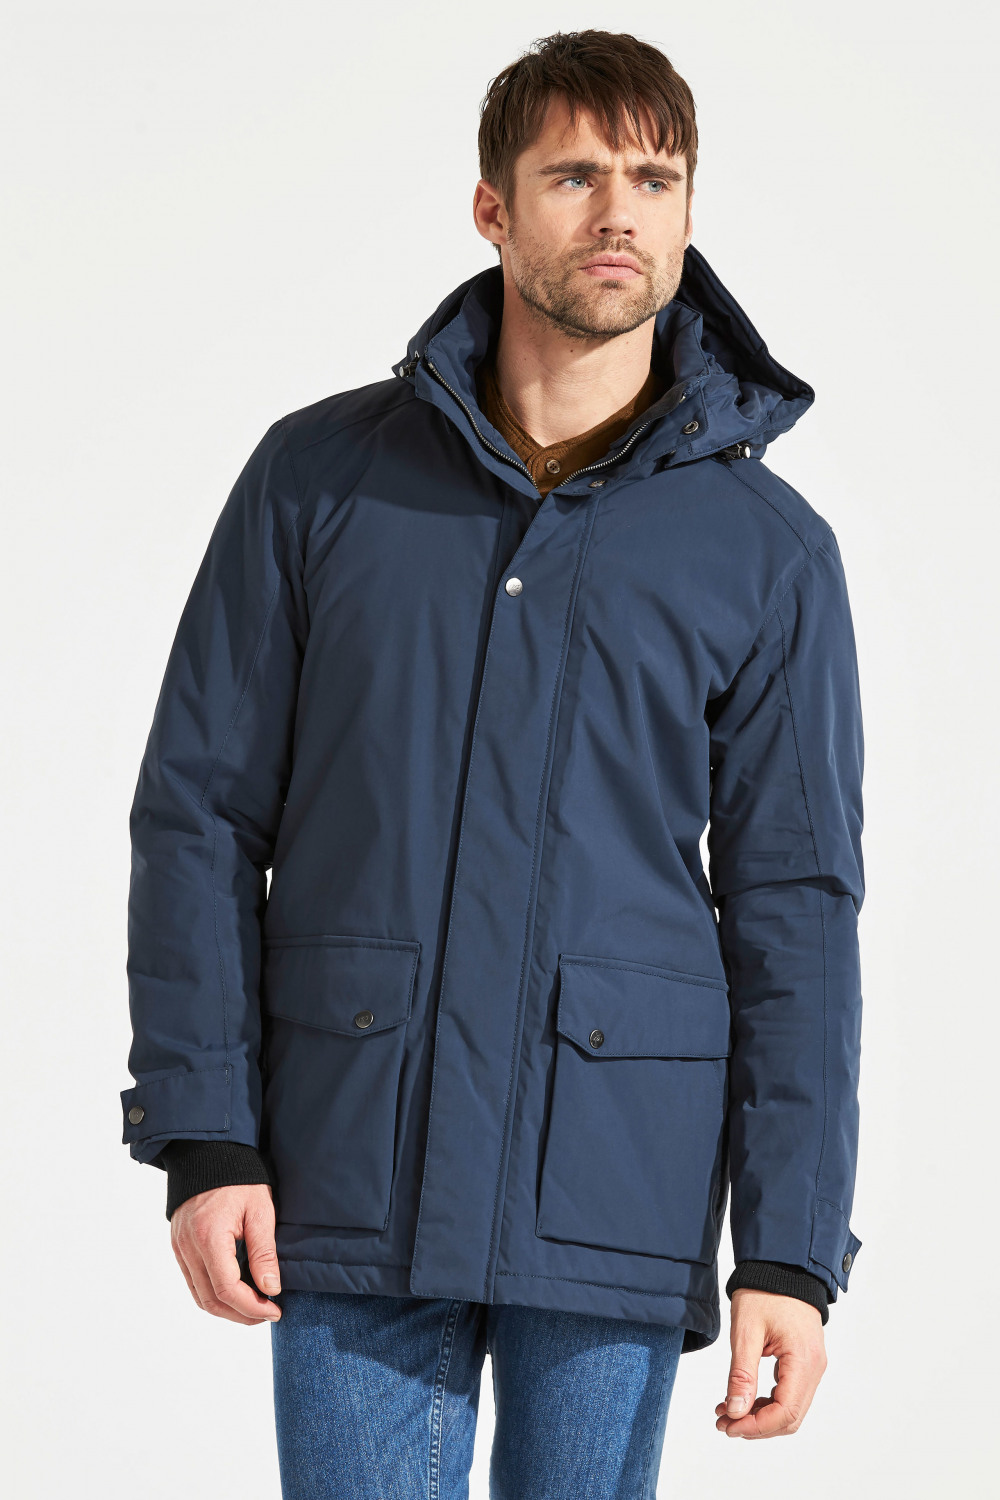 Didriksons Rolf Men's Jacket